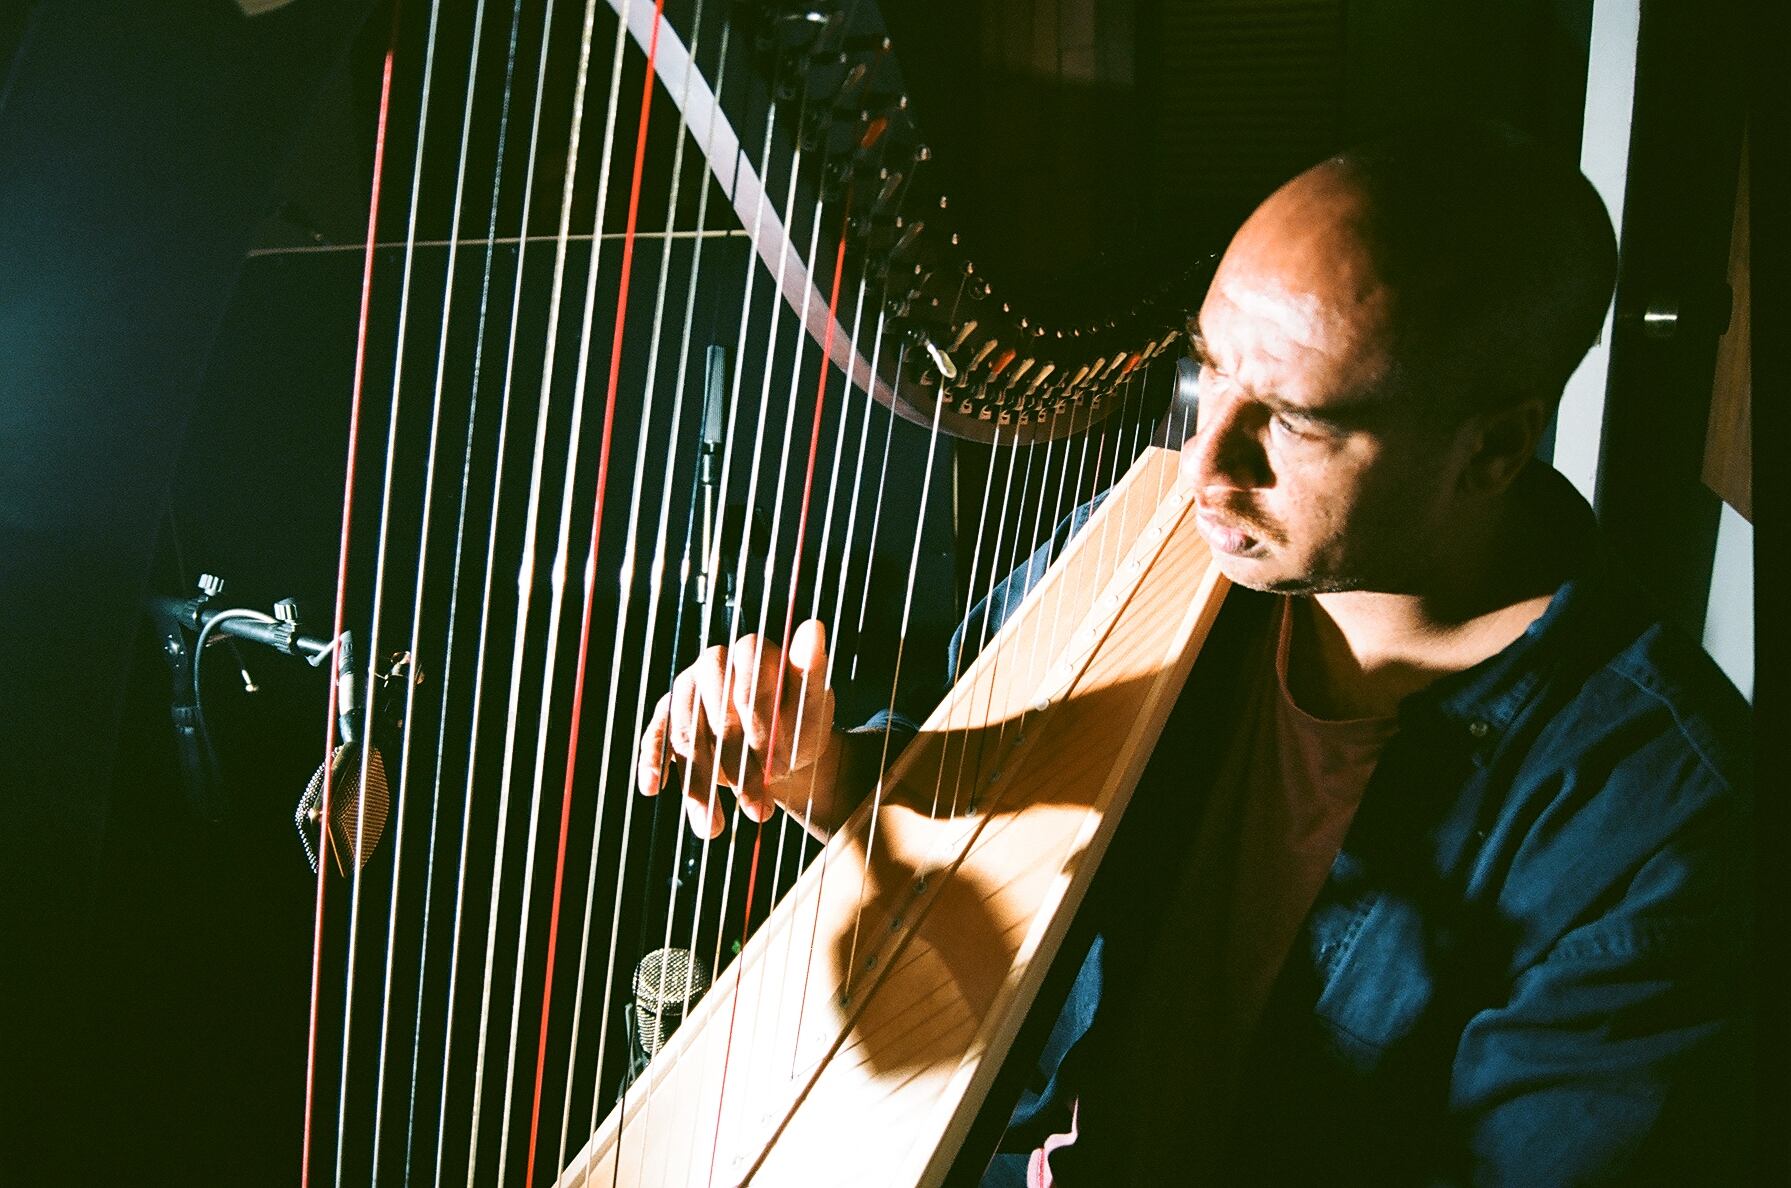 Harpist Christopher Lyles (Photo by Devin O'Brien)